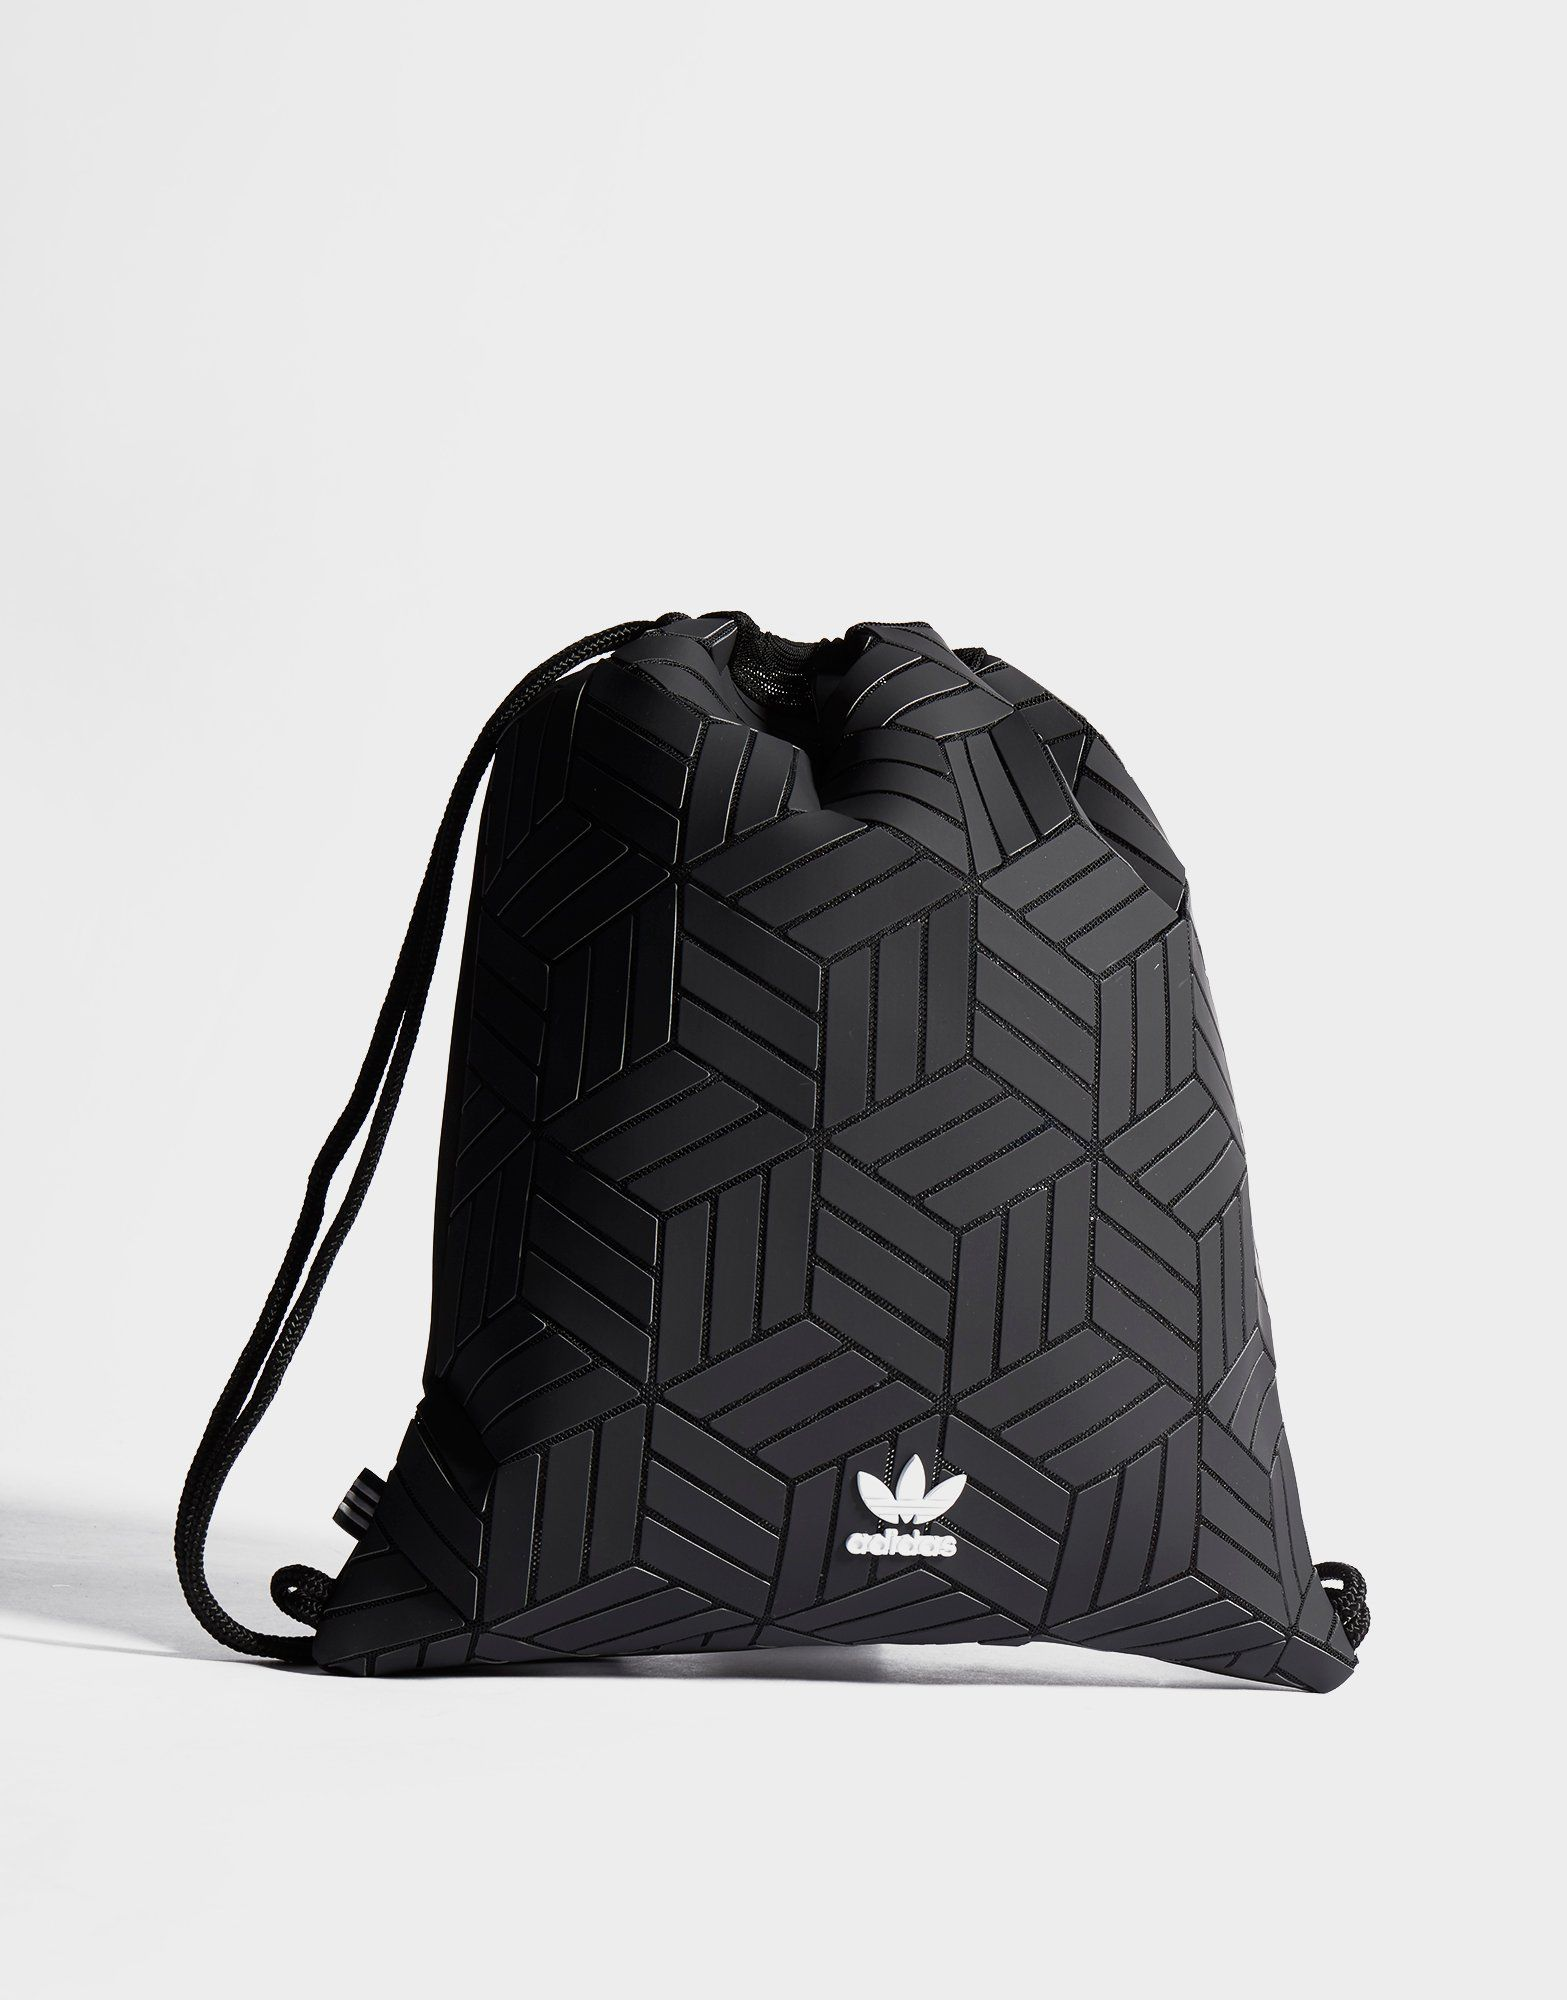 Sports Adidas 3d Originals SackJd Gym Ireland oxdeCB